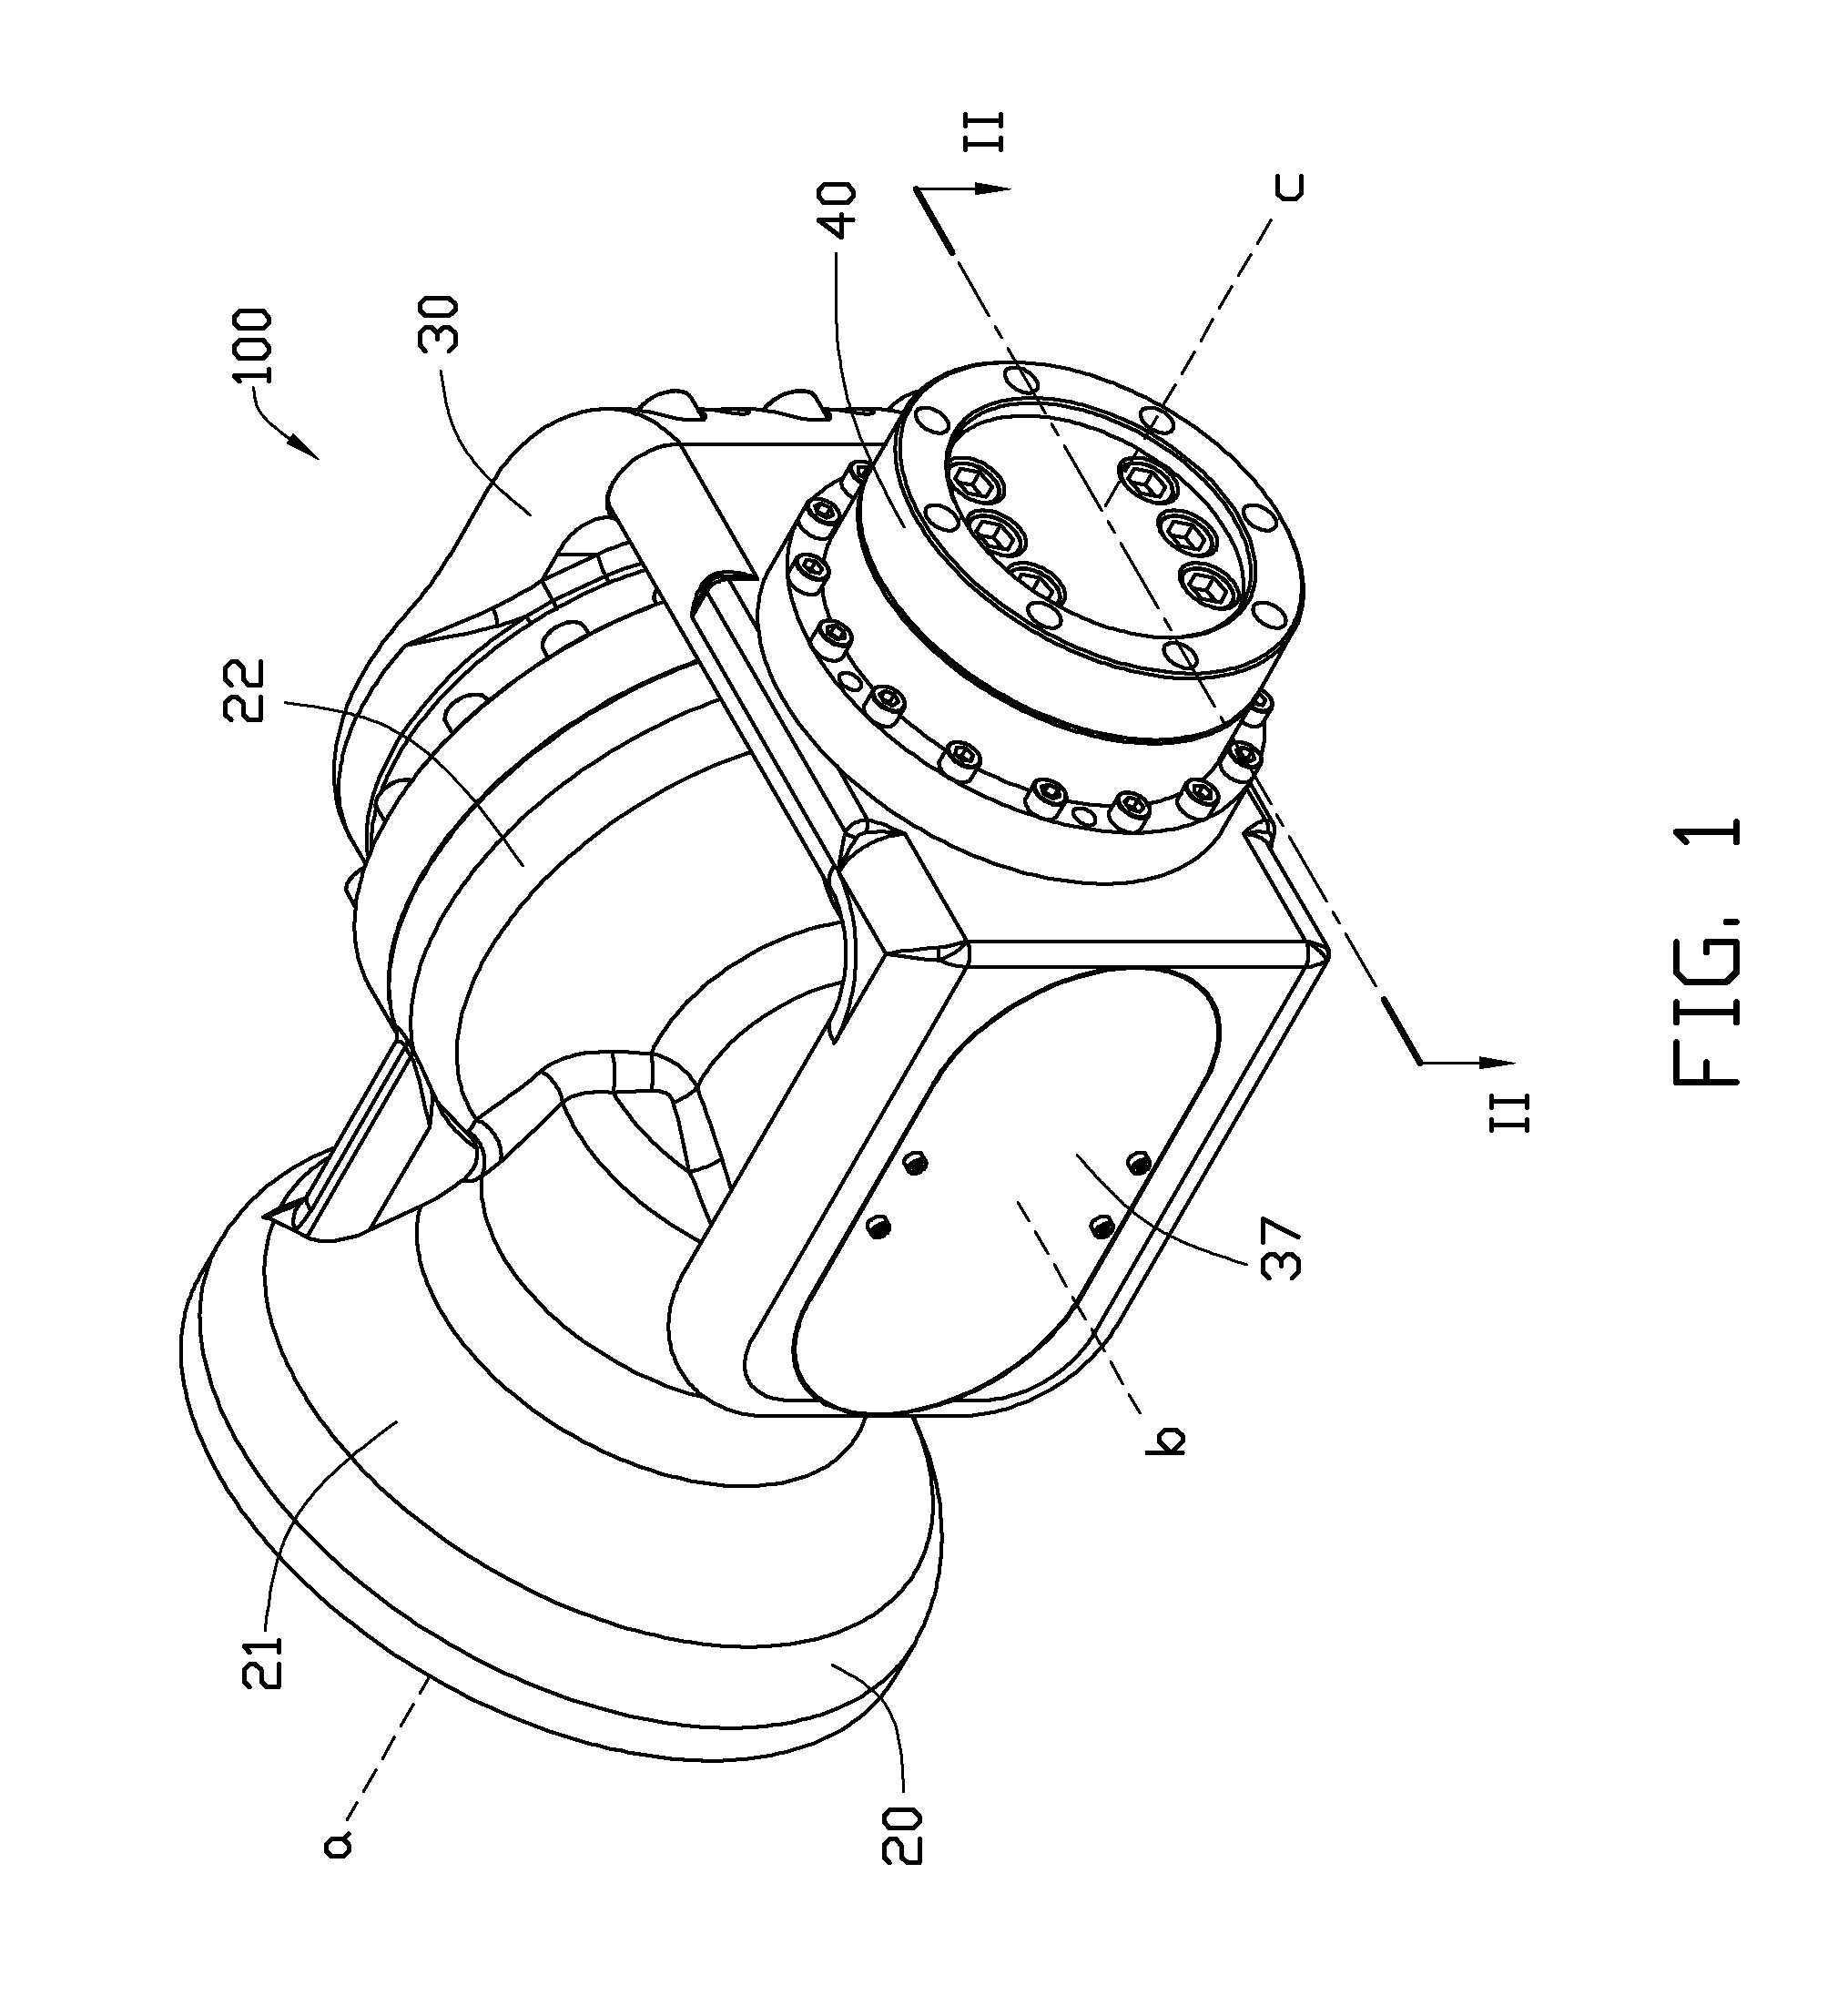 patent us8511199 - robot arm assembly